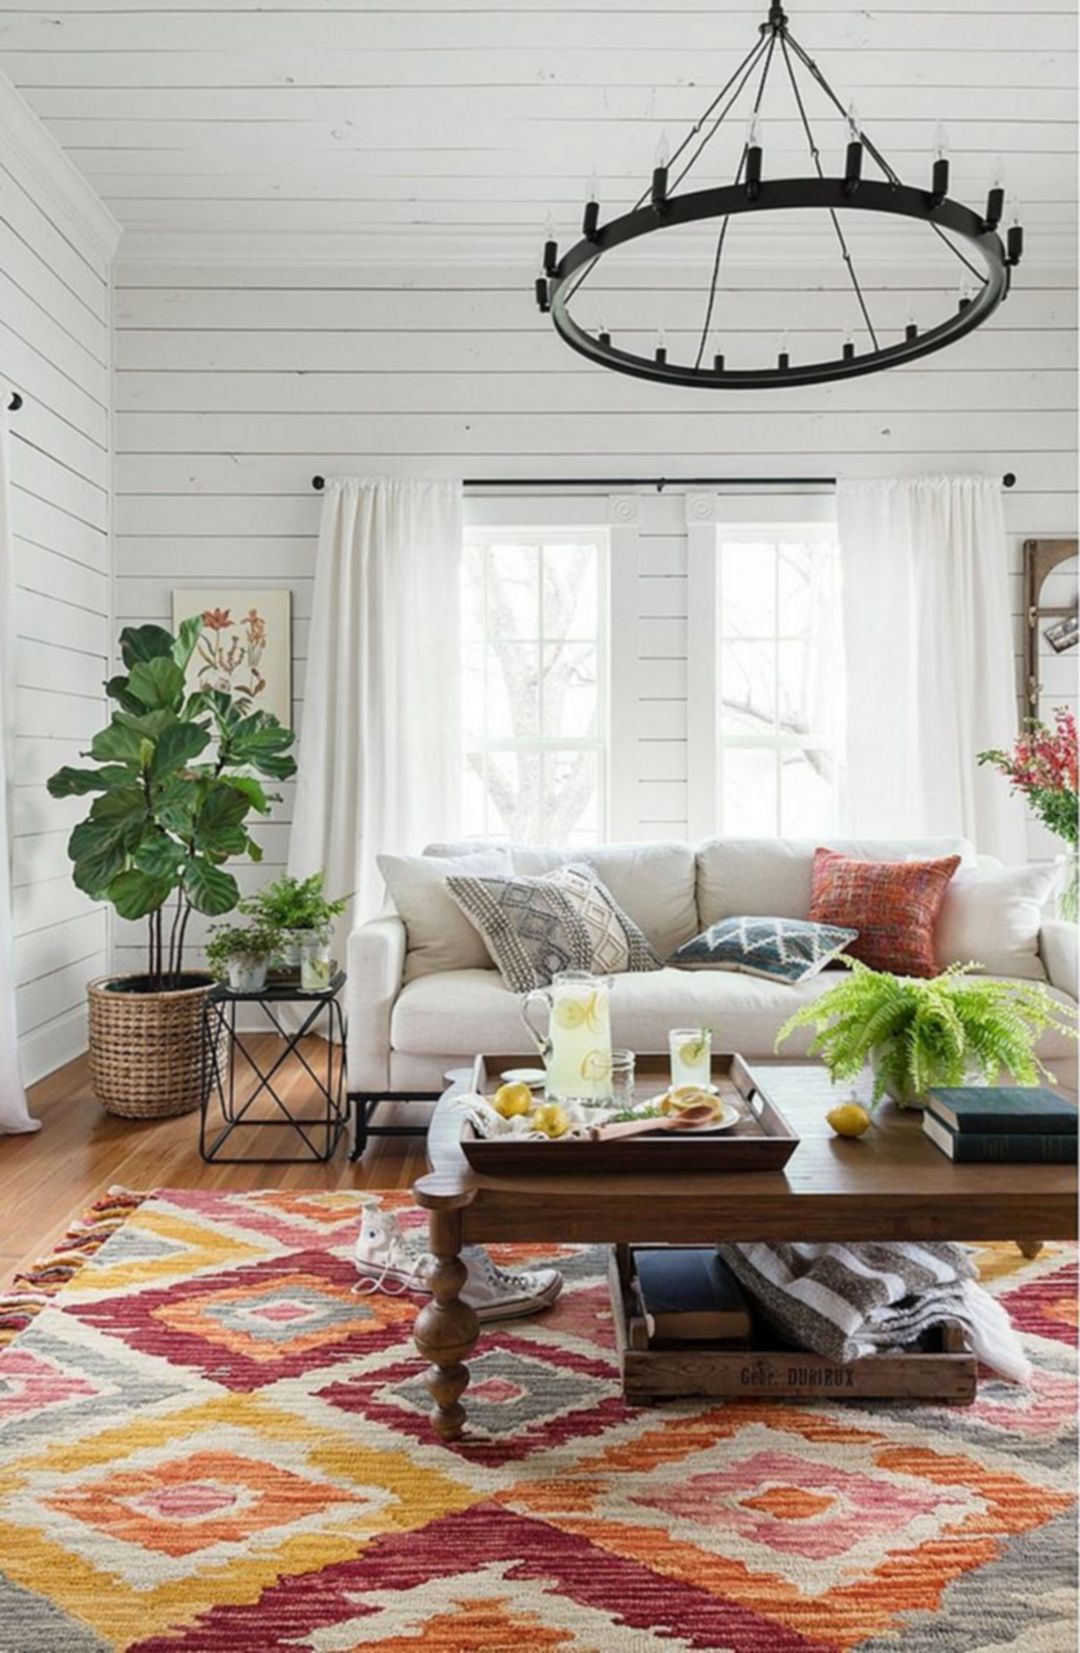 Small Boho Living Room: 20 Awesome Bohemian Farmhouse Decorating Ideas For Your